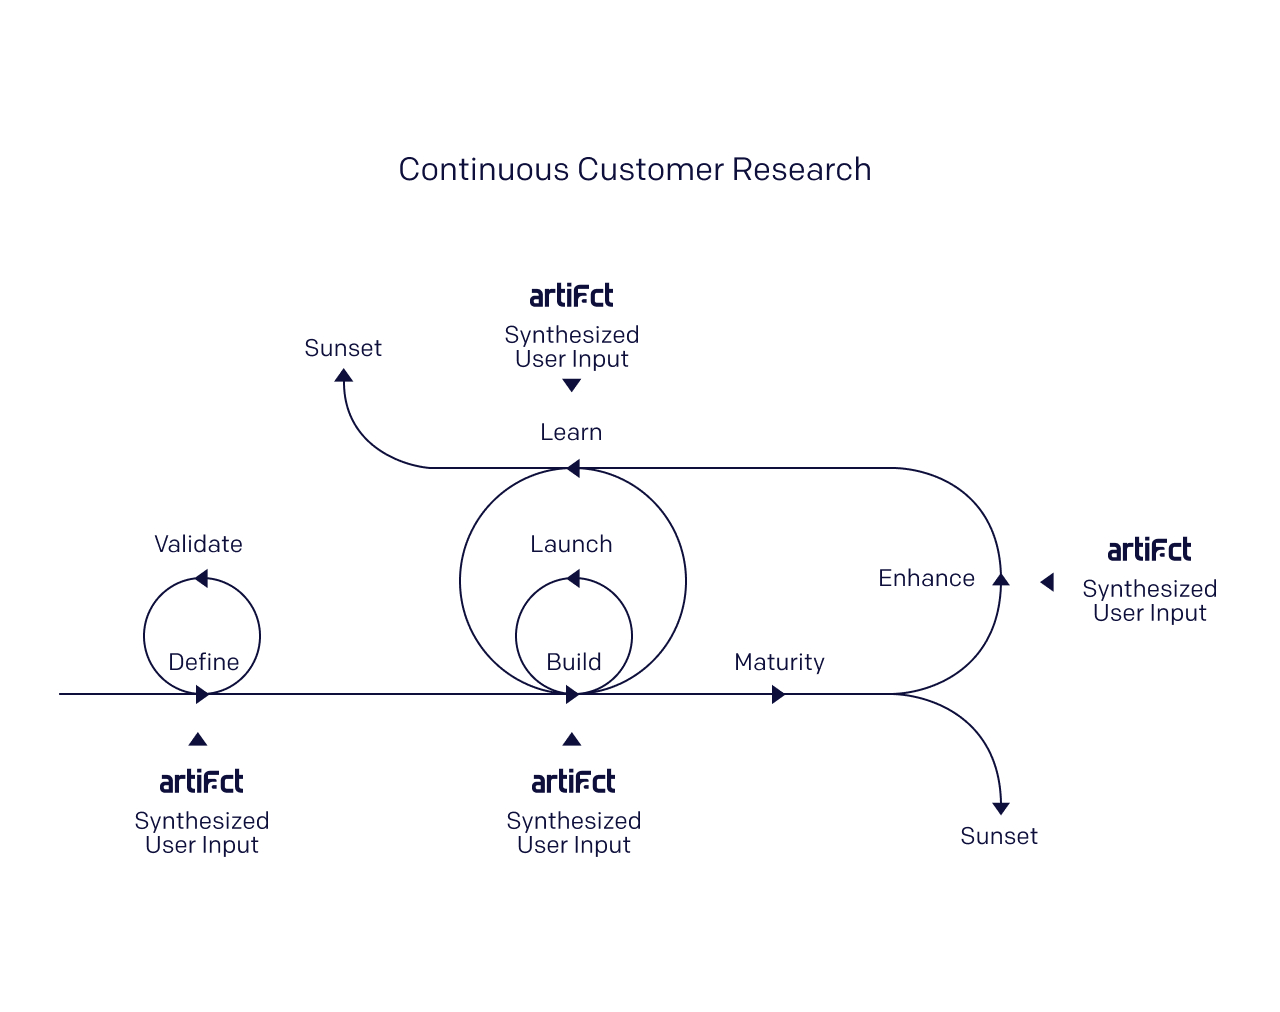 A depicting of a continuous customer research process with Artifact involved.